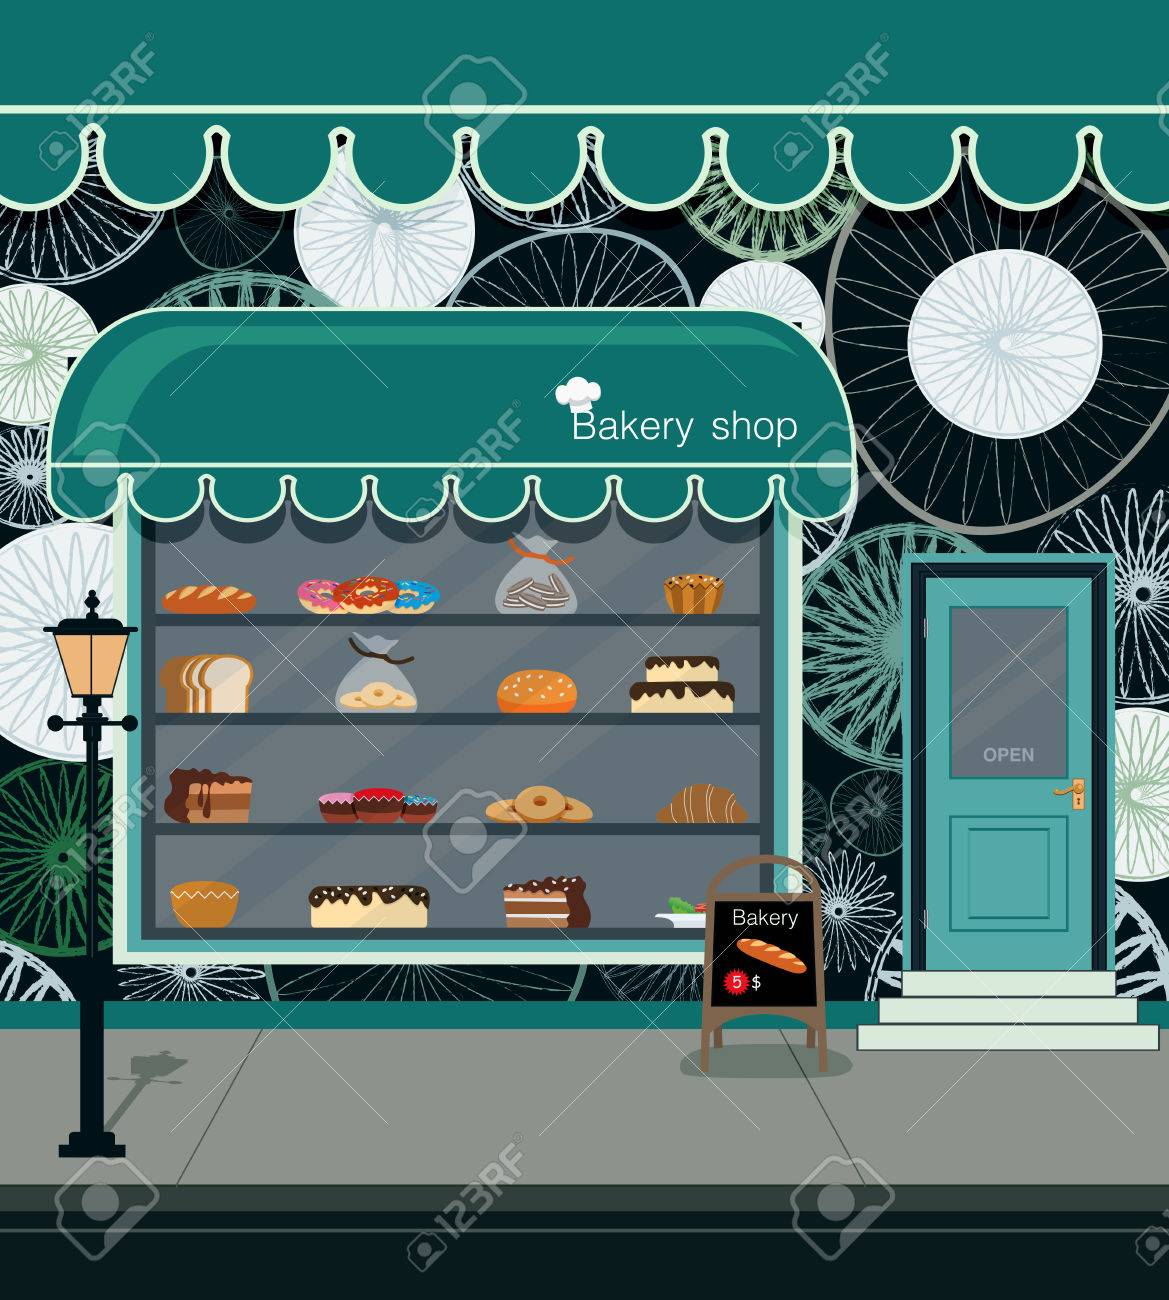 Bread and bakery products in the store bakery. - 45013677